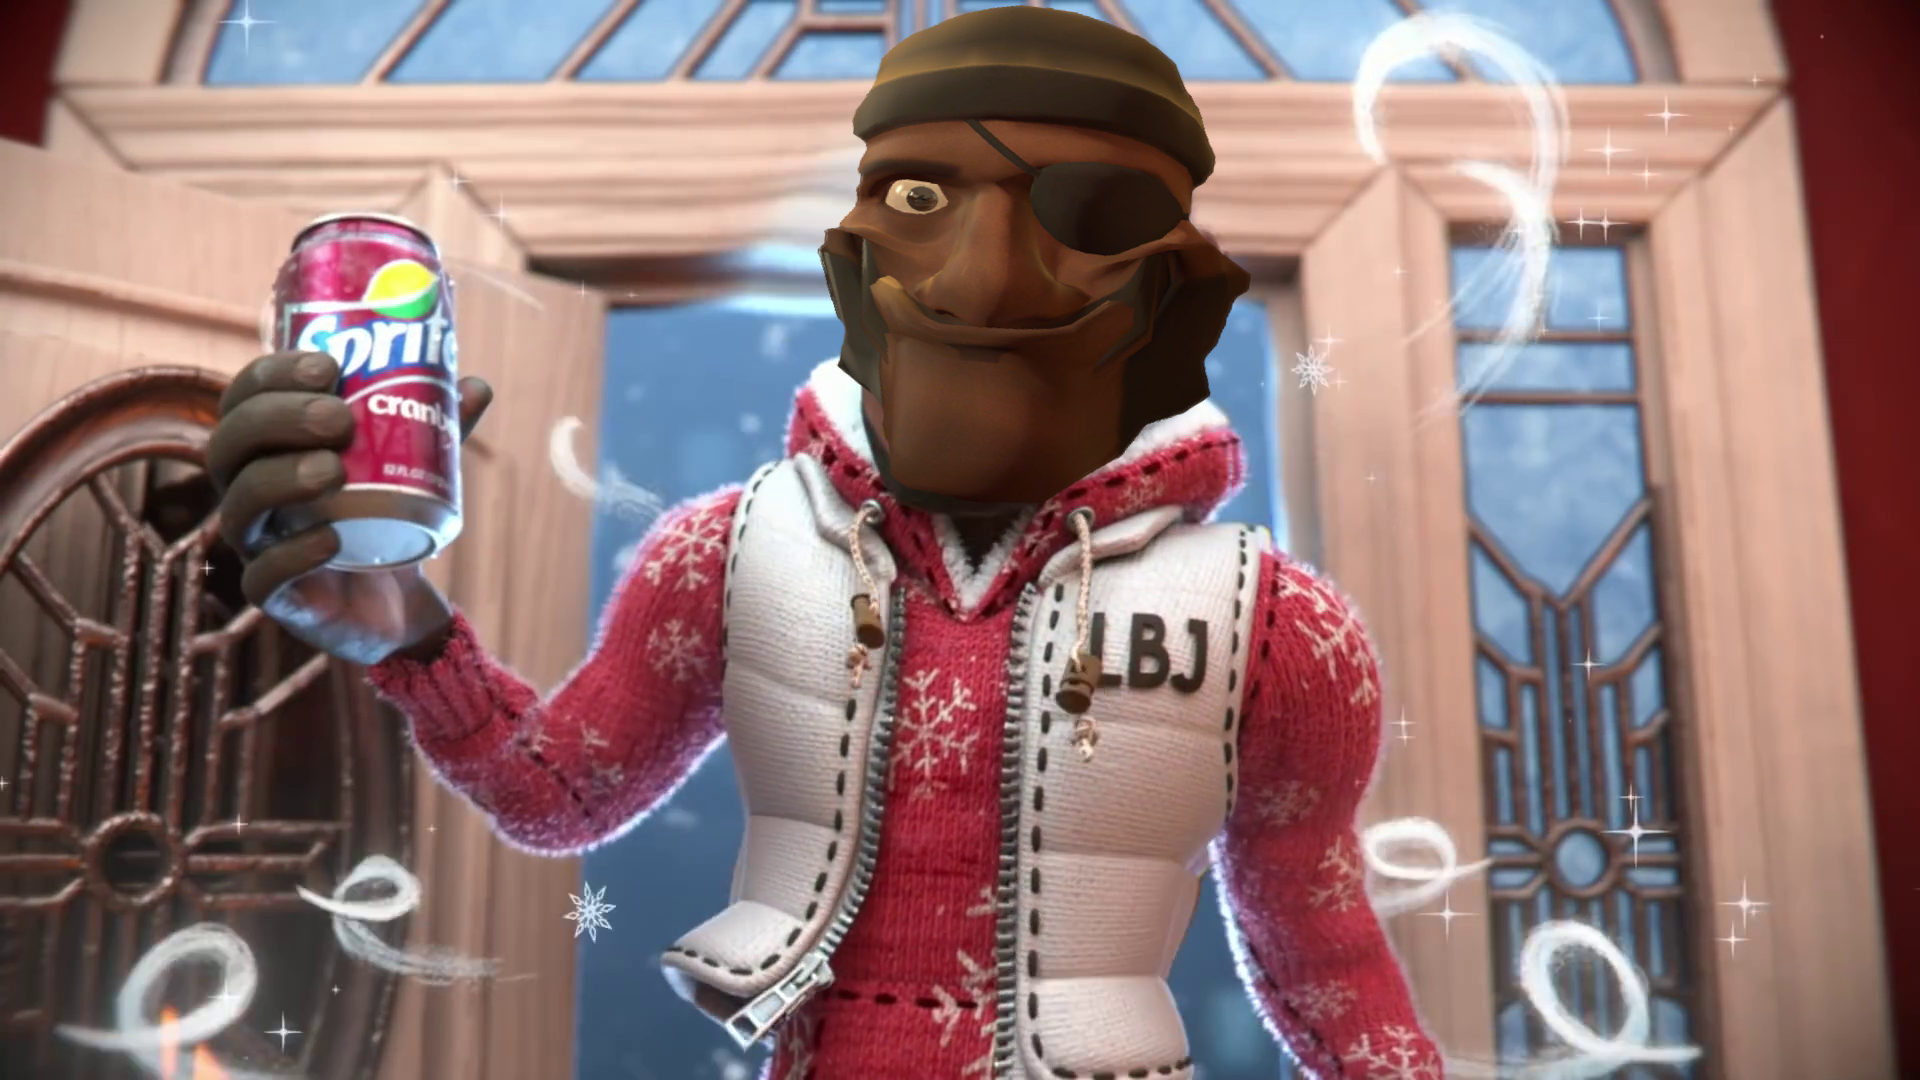 Wanna Sprite Cranberry But It Has A Demoman By Sharpe Fan On Deviantart We don't have sprite cranberries in the uae but merry christmas x333. wanna sprite cranberry but it has a